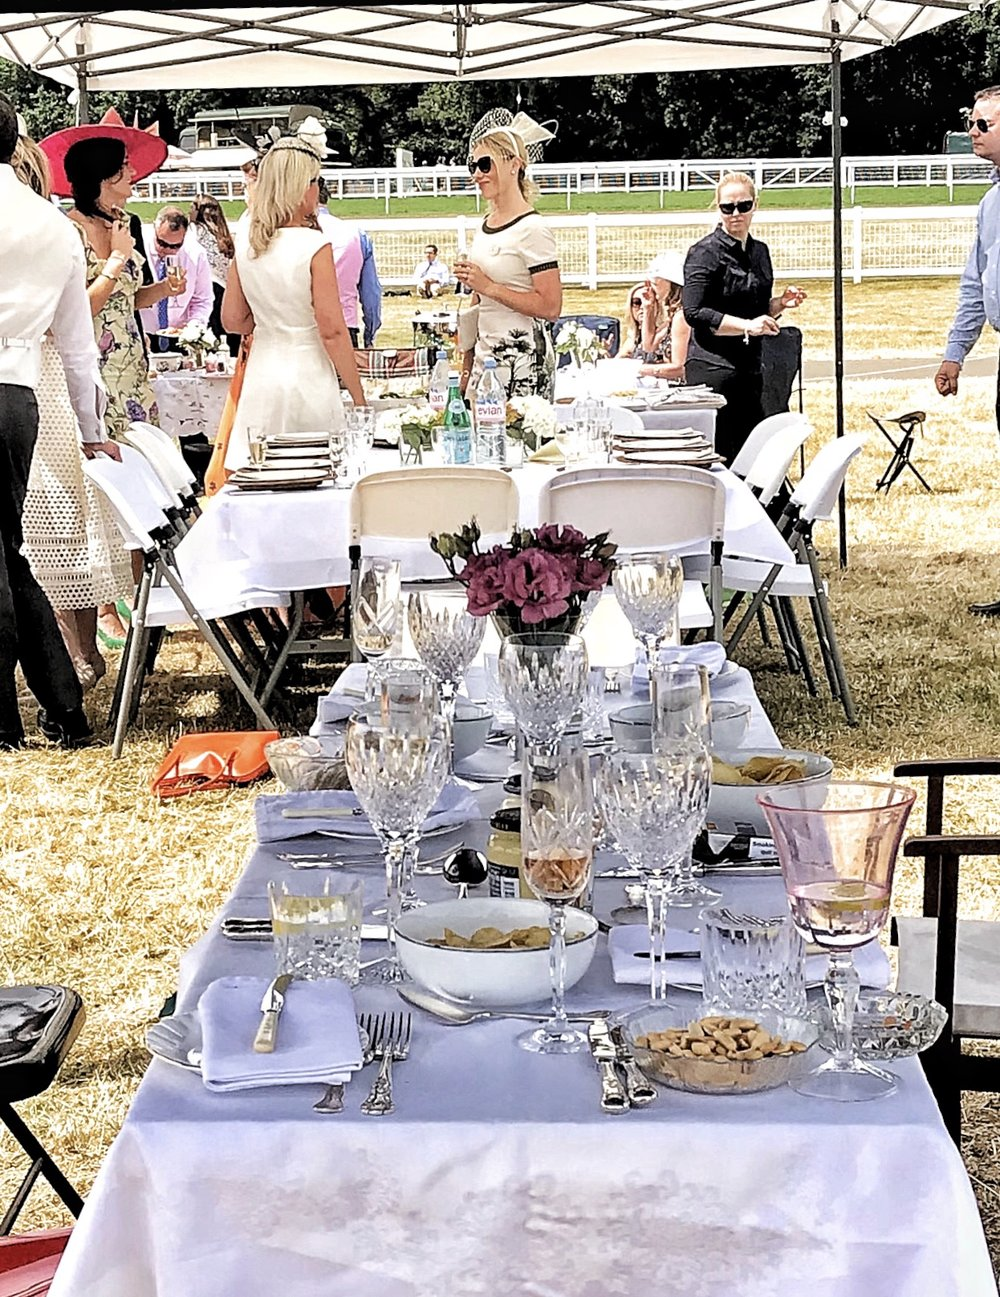 Tailgating Picnic At Royal Ascot